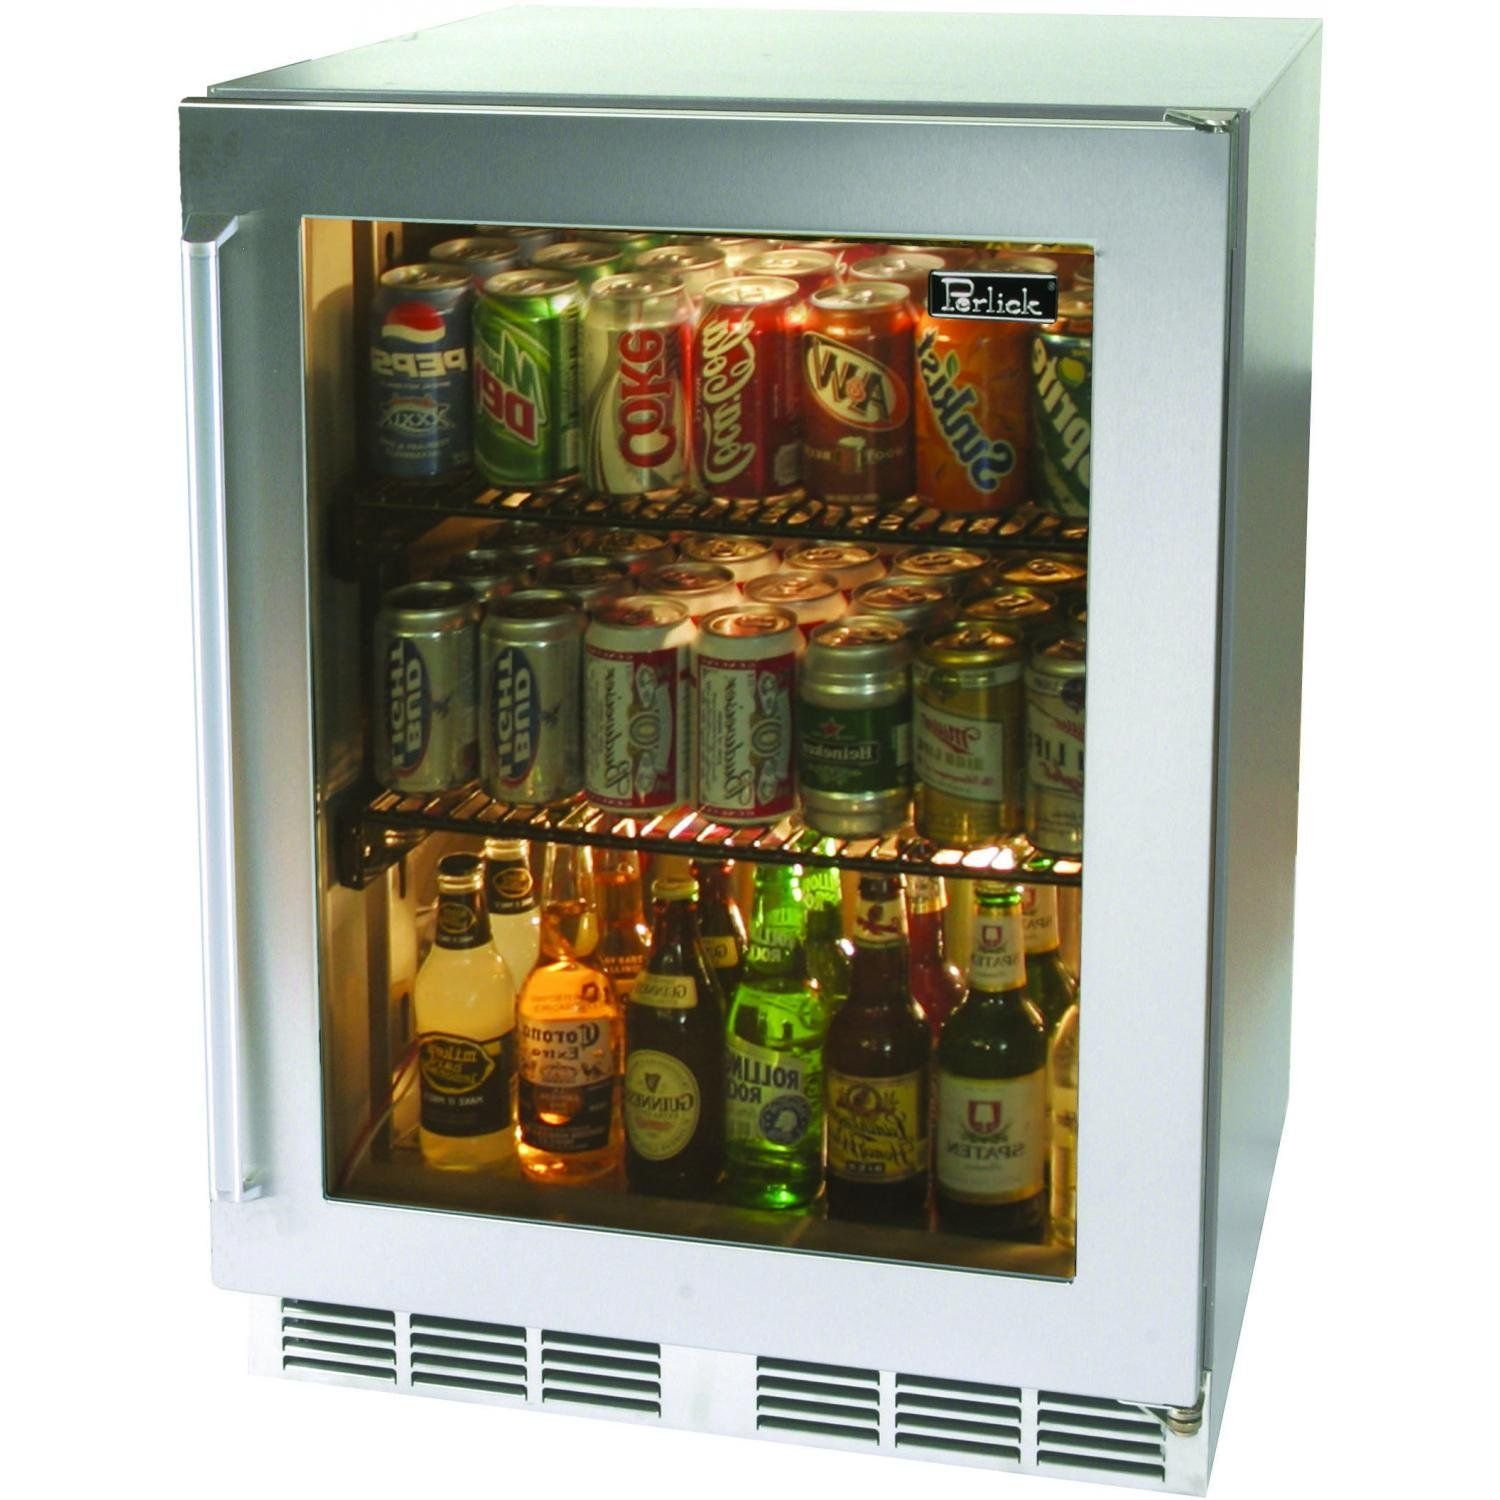 Nice small glass door refrigerator for home with cool 3 tiers and nice small glass door refrigerator for home with cool 3 tiers and chrome pull door design planetlyrics Choice Image